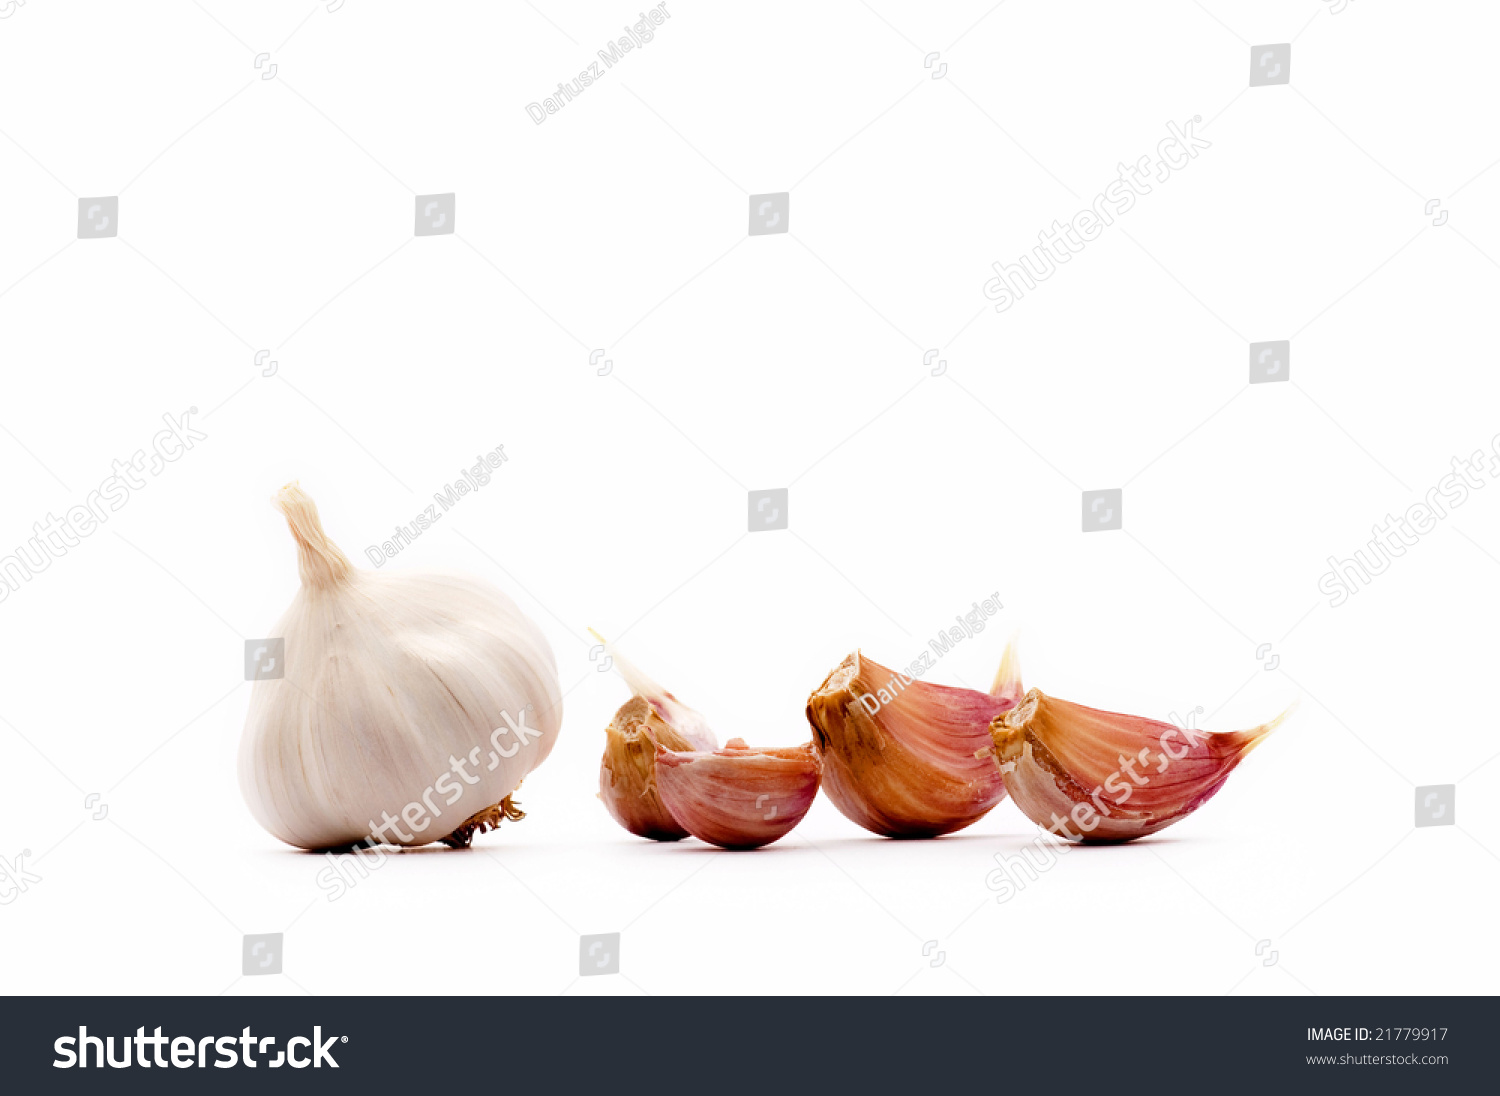 the effectiveness of using garlic allium Also, per increased with increasing allium sativum doses up to 30g / kg diet ( 162±003) and slightly increased with doses up to 45 mg chloramphenicol / kg diet (134±002) feed efficiency ratio (fer) increased with garlic doses up to 30g/kg, while the opposite trend was found with chloramphenicol diets there was a.